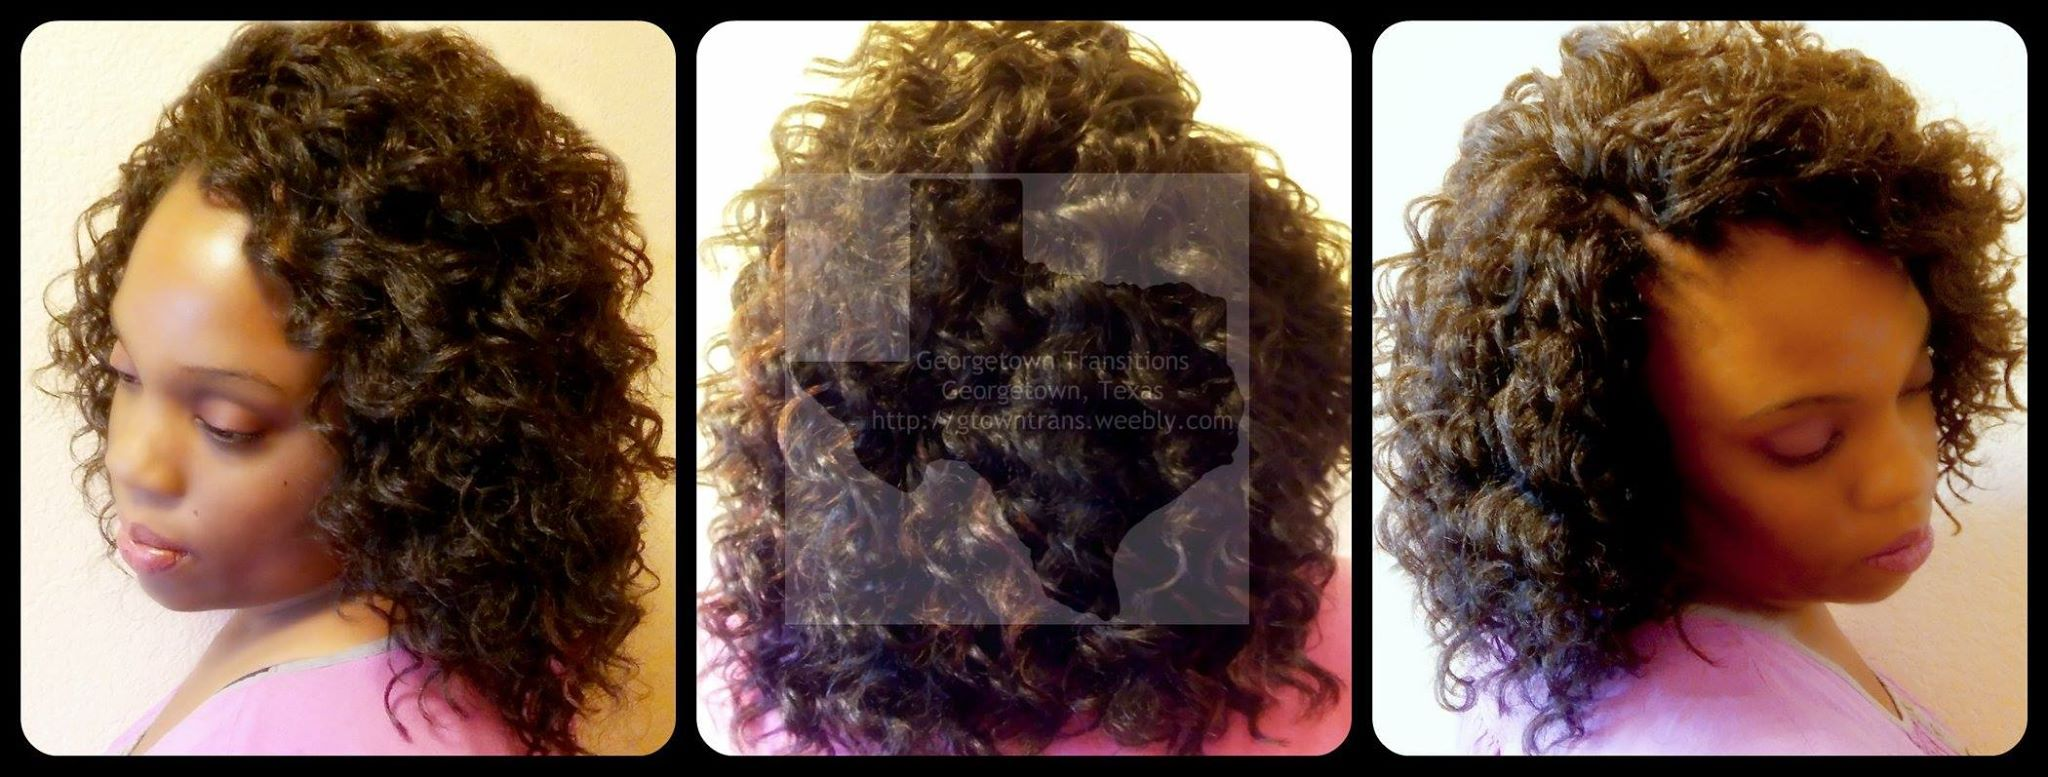 Crochet Hair Weave Installment by Stylist RayRay of Georgetown Transitions.